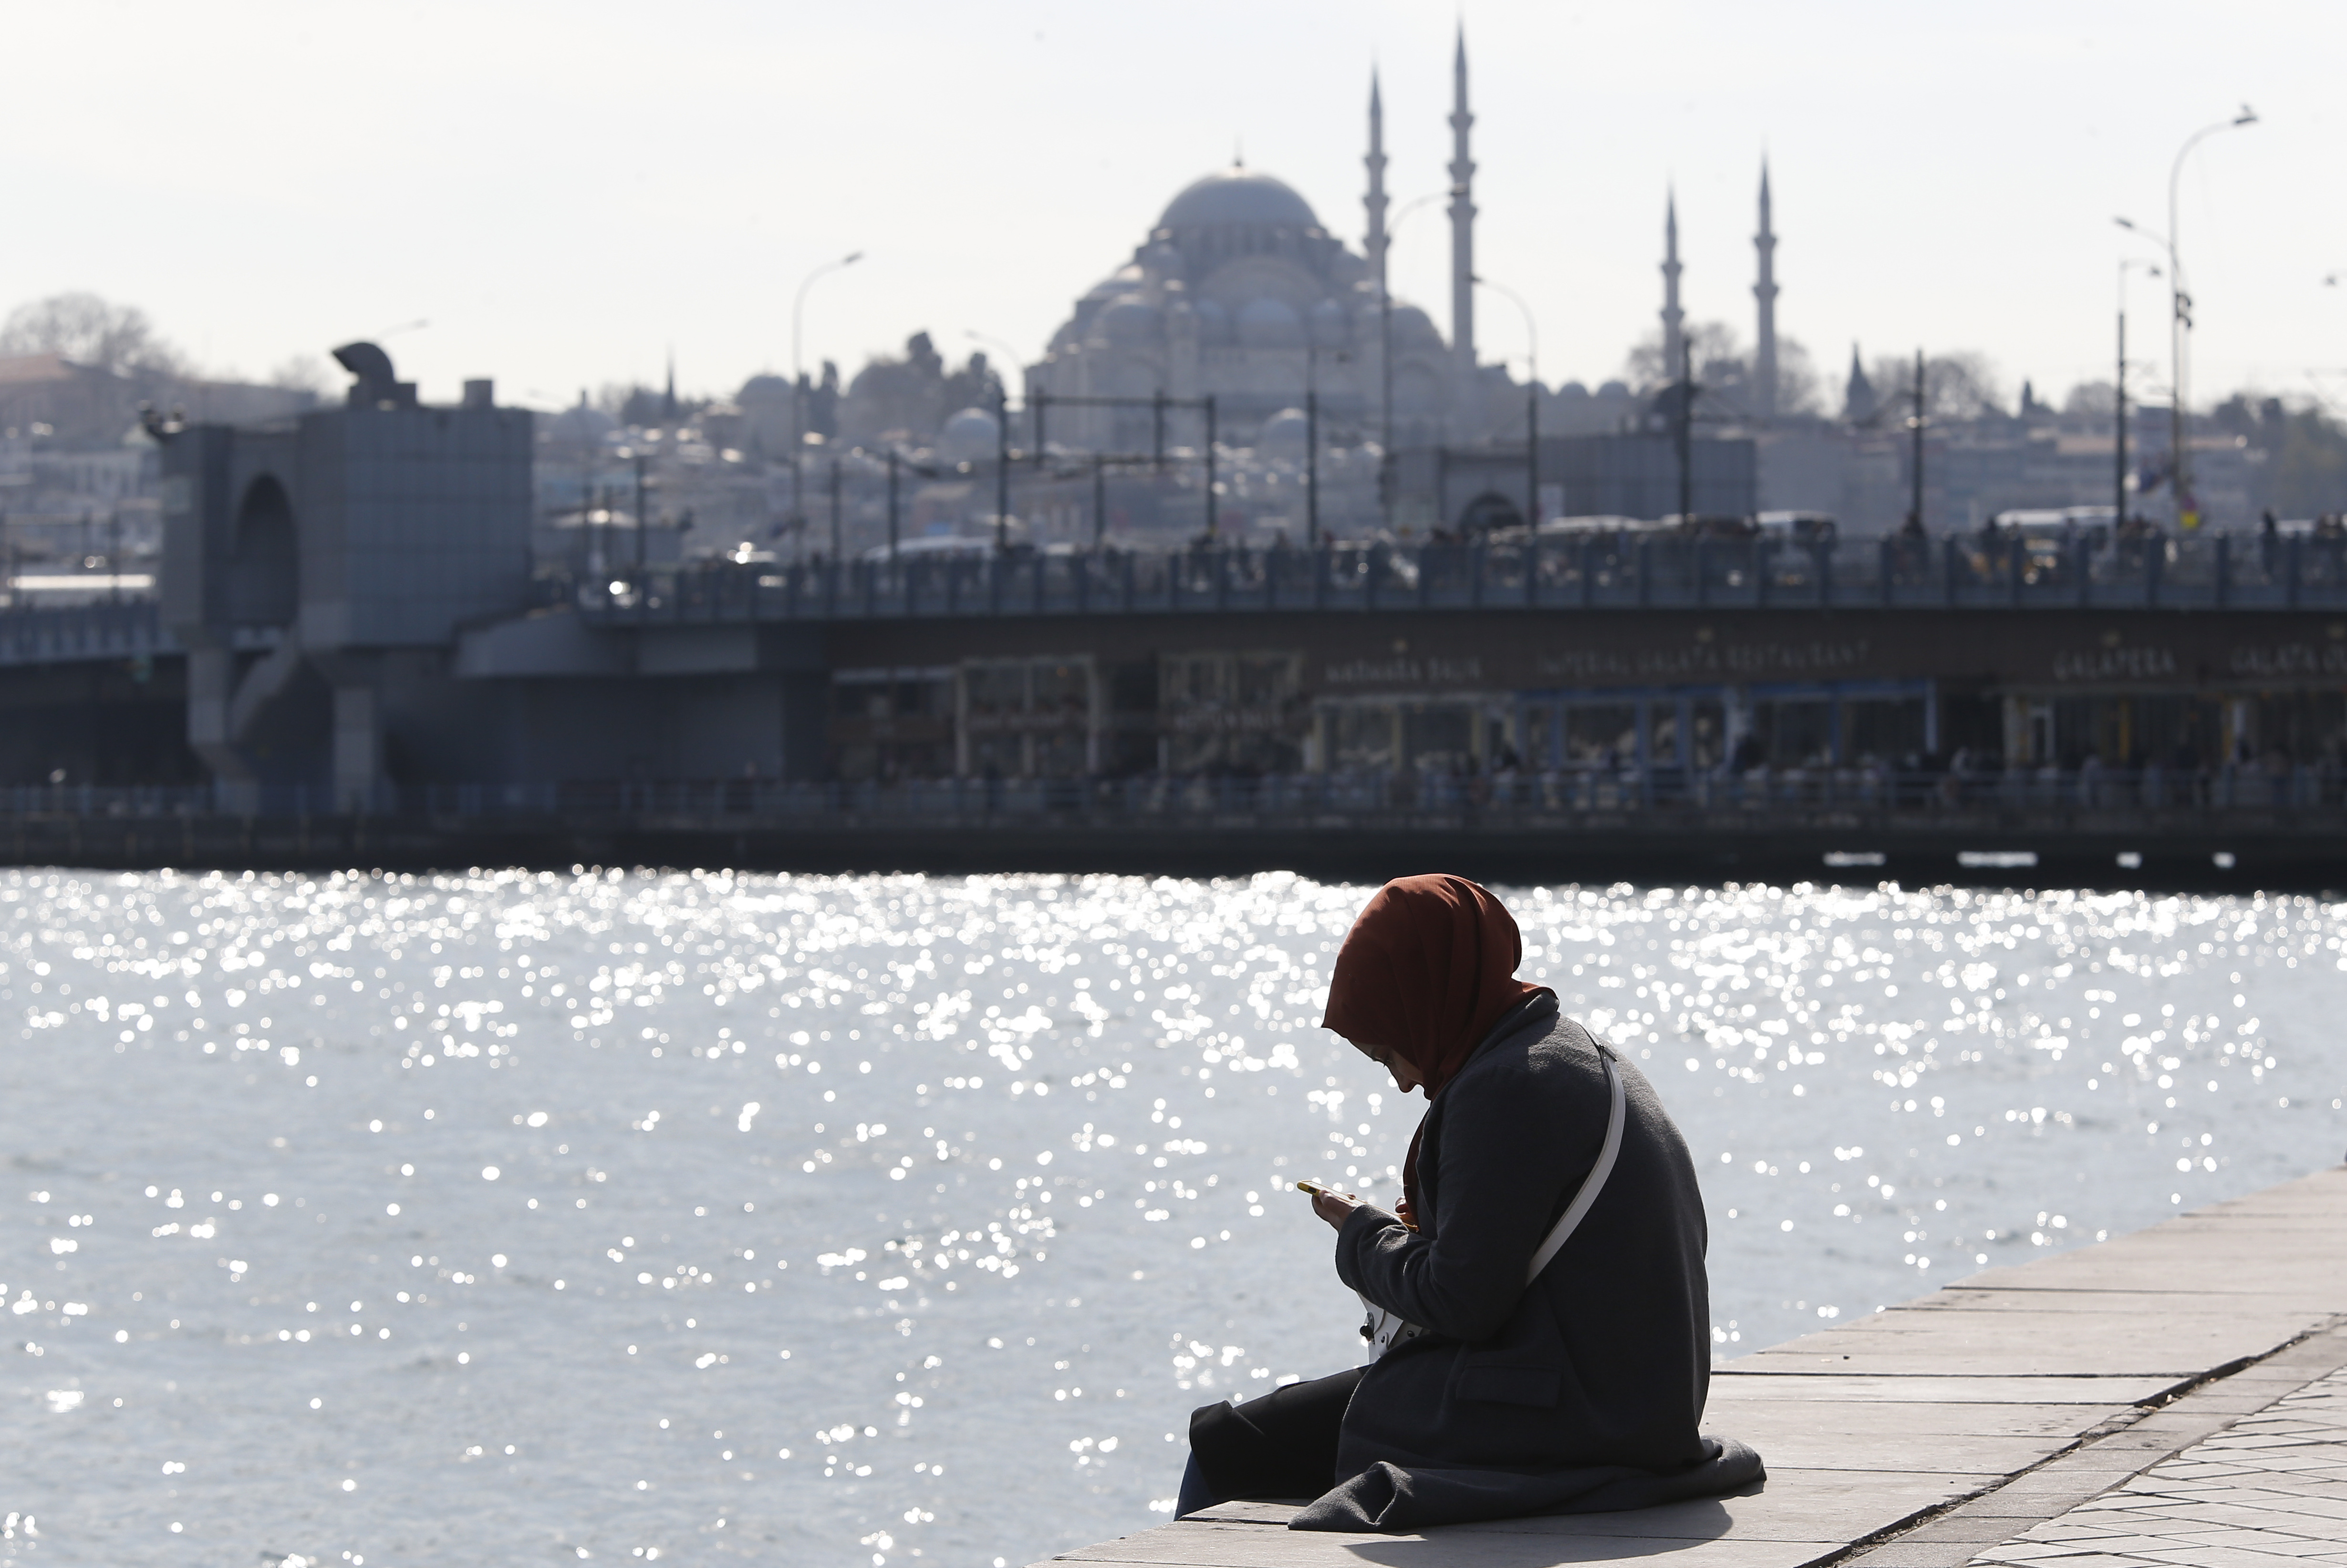 In this Thursday, April 4, 2019 photo, a woman, backdropped by the Suleymaniye mosque, sits by the Golden Horn in Istanbul. The mood among opposition supporters in Turkey's biggest city is one of jubilation but also worry - fear that their win in Istanbul's mayoral race could be overturned in a recount taking place after the ruling party challenged the election results. (AP Photo/Lefteris Pitarakis)